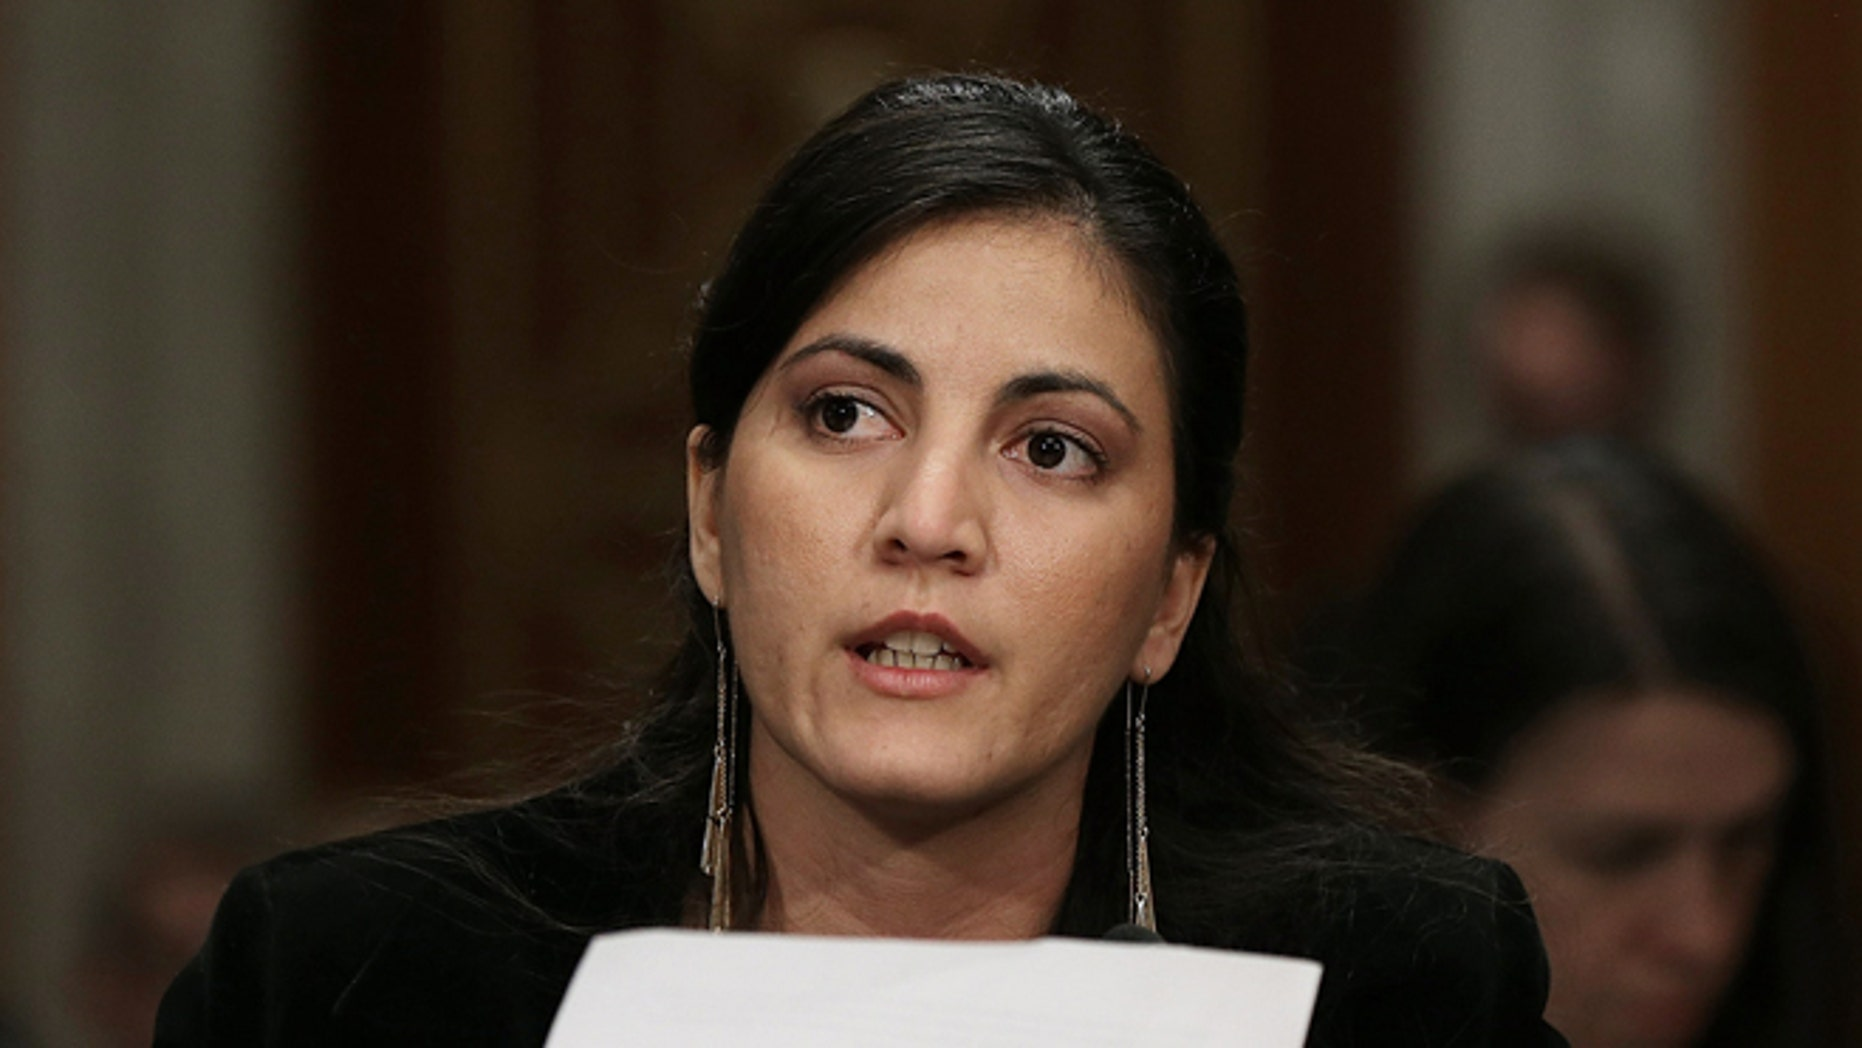 WASHINGTON, DC - FEBRUARY 03:  Rosa Maria Paya, of the Cuban Christian Liberation Movement, testifies during a Senate Foreign Relations Western Hemisphere Subcommittee hearing February 3, 2015 in Washington, DC. The committee heard testimony on the impact of U.S. policy changes in Cuba. Also pictured is the leader of Cuba's Ladies in White activist group Berta Solar (C).  (Photo by Win McNamee/Getty Images)